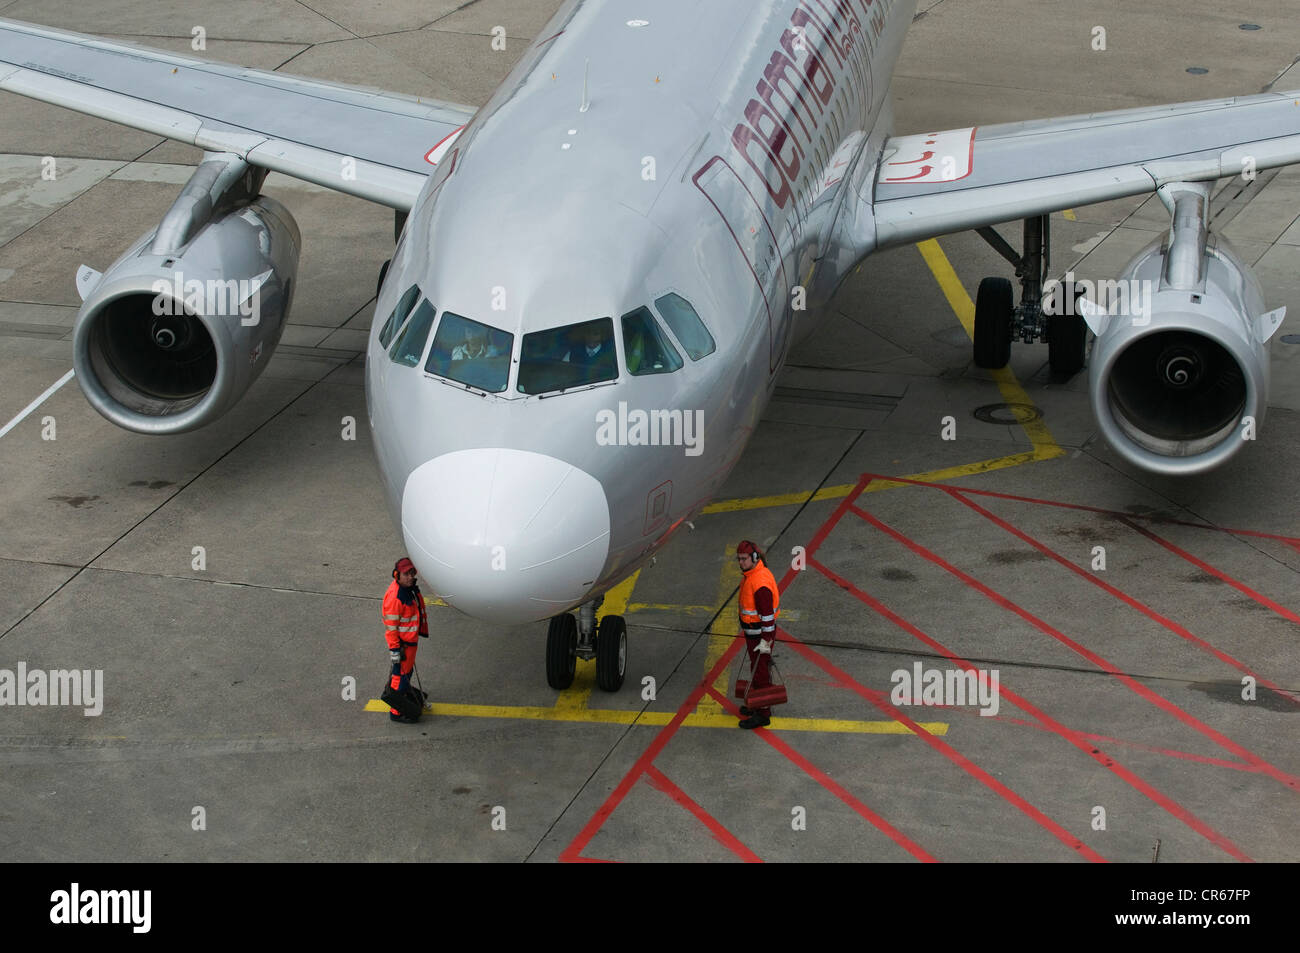 Germanwings aircraft, finishing touches prior to take-off, apron workers at the machine, Cologne Bonn Airport, also - Stock Image